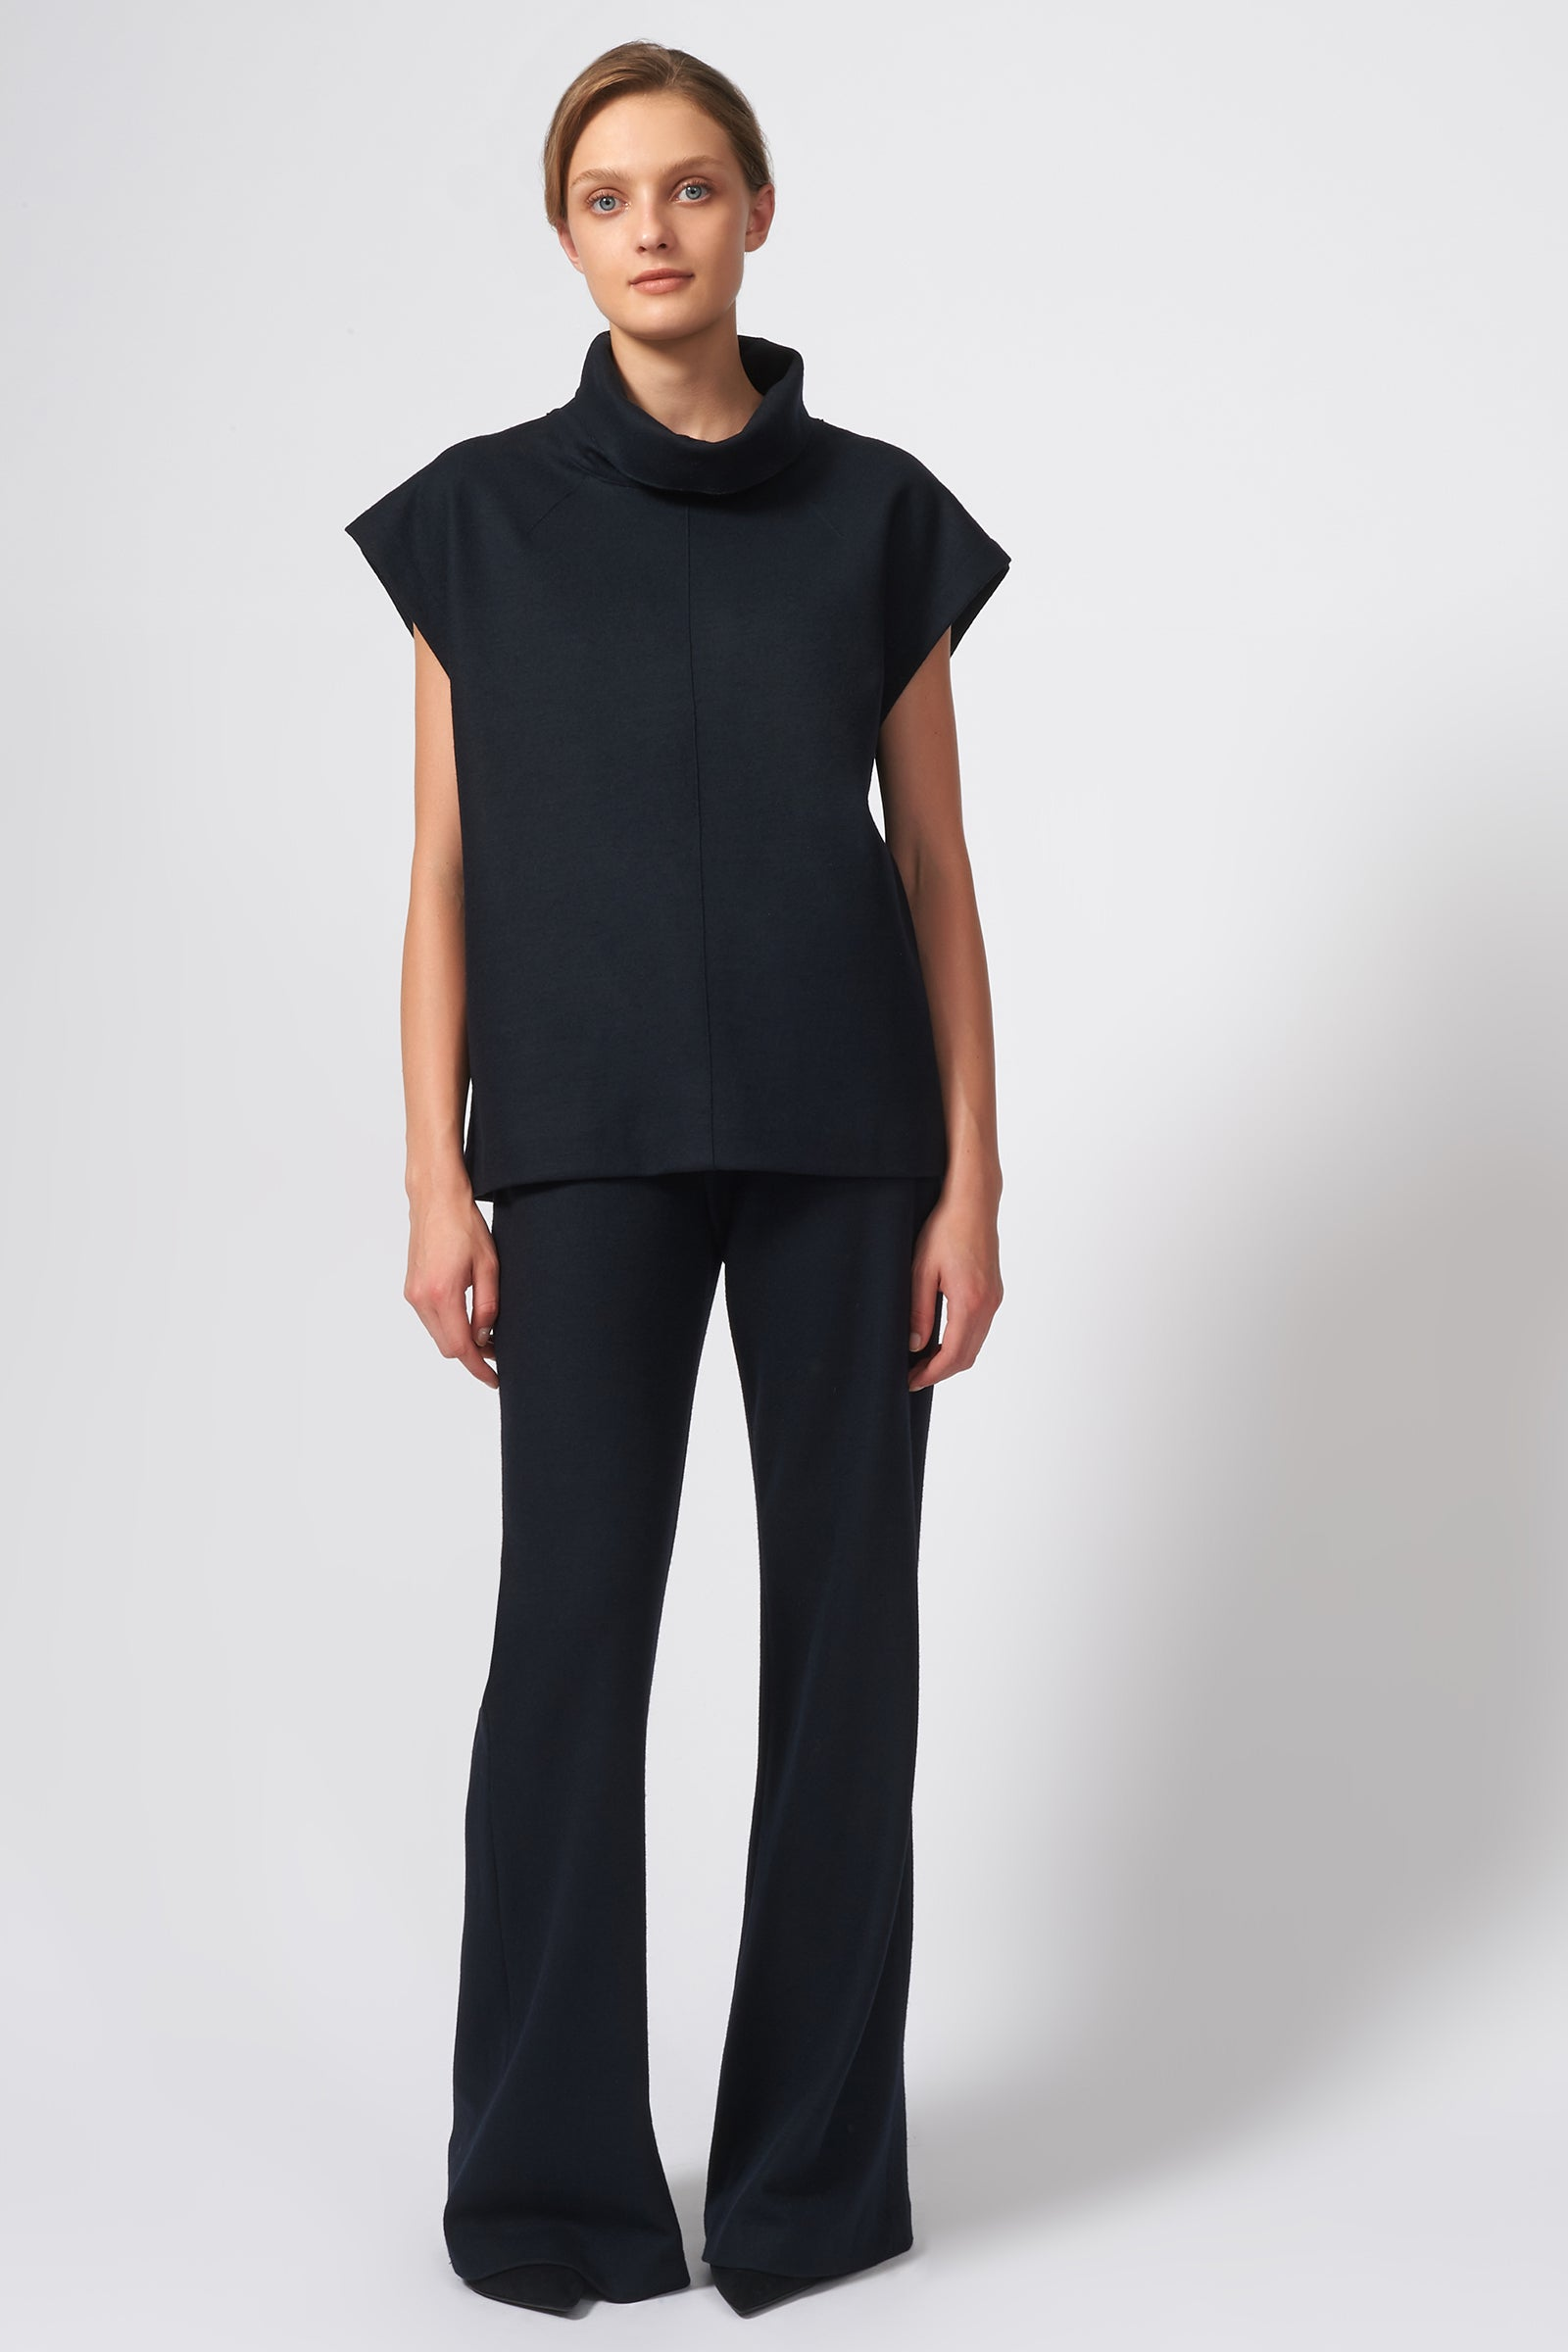 Kal Rieman Seamed Cap Sleeve Turtleneck in Midnight on Model Front Full View